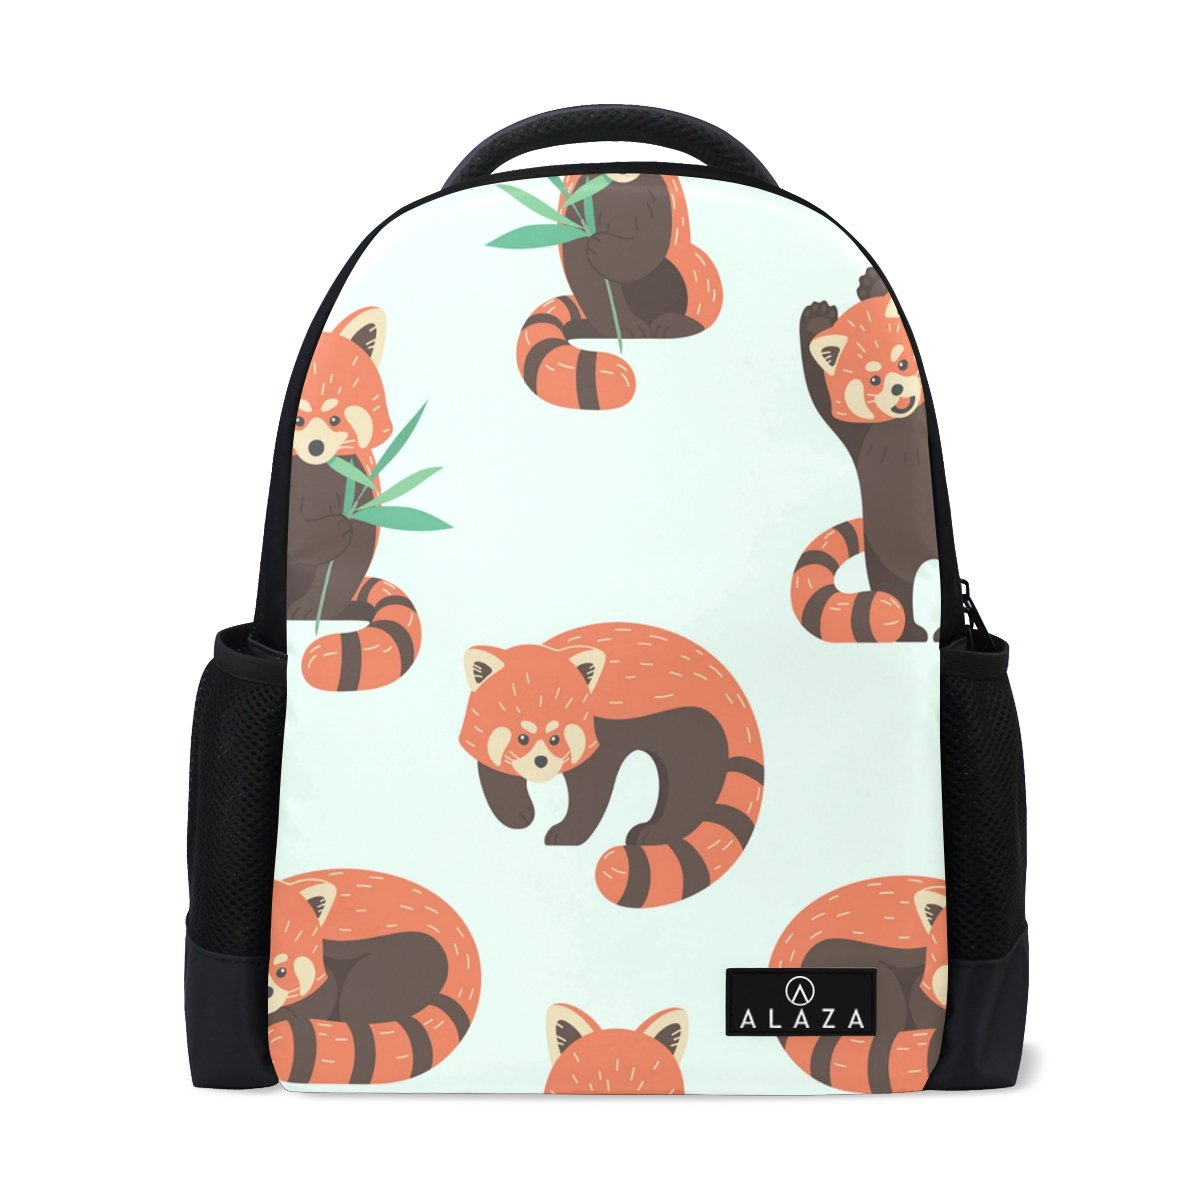 My Daily Cute Red Panda Backpack 14 Inch Laptop Daypack Bookbag for Travel College School